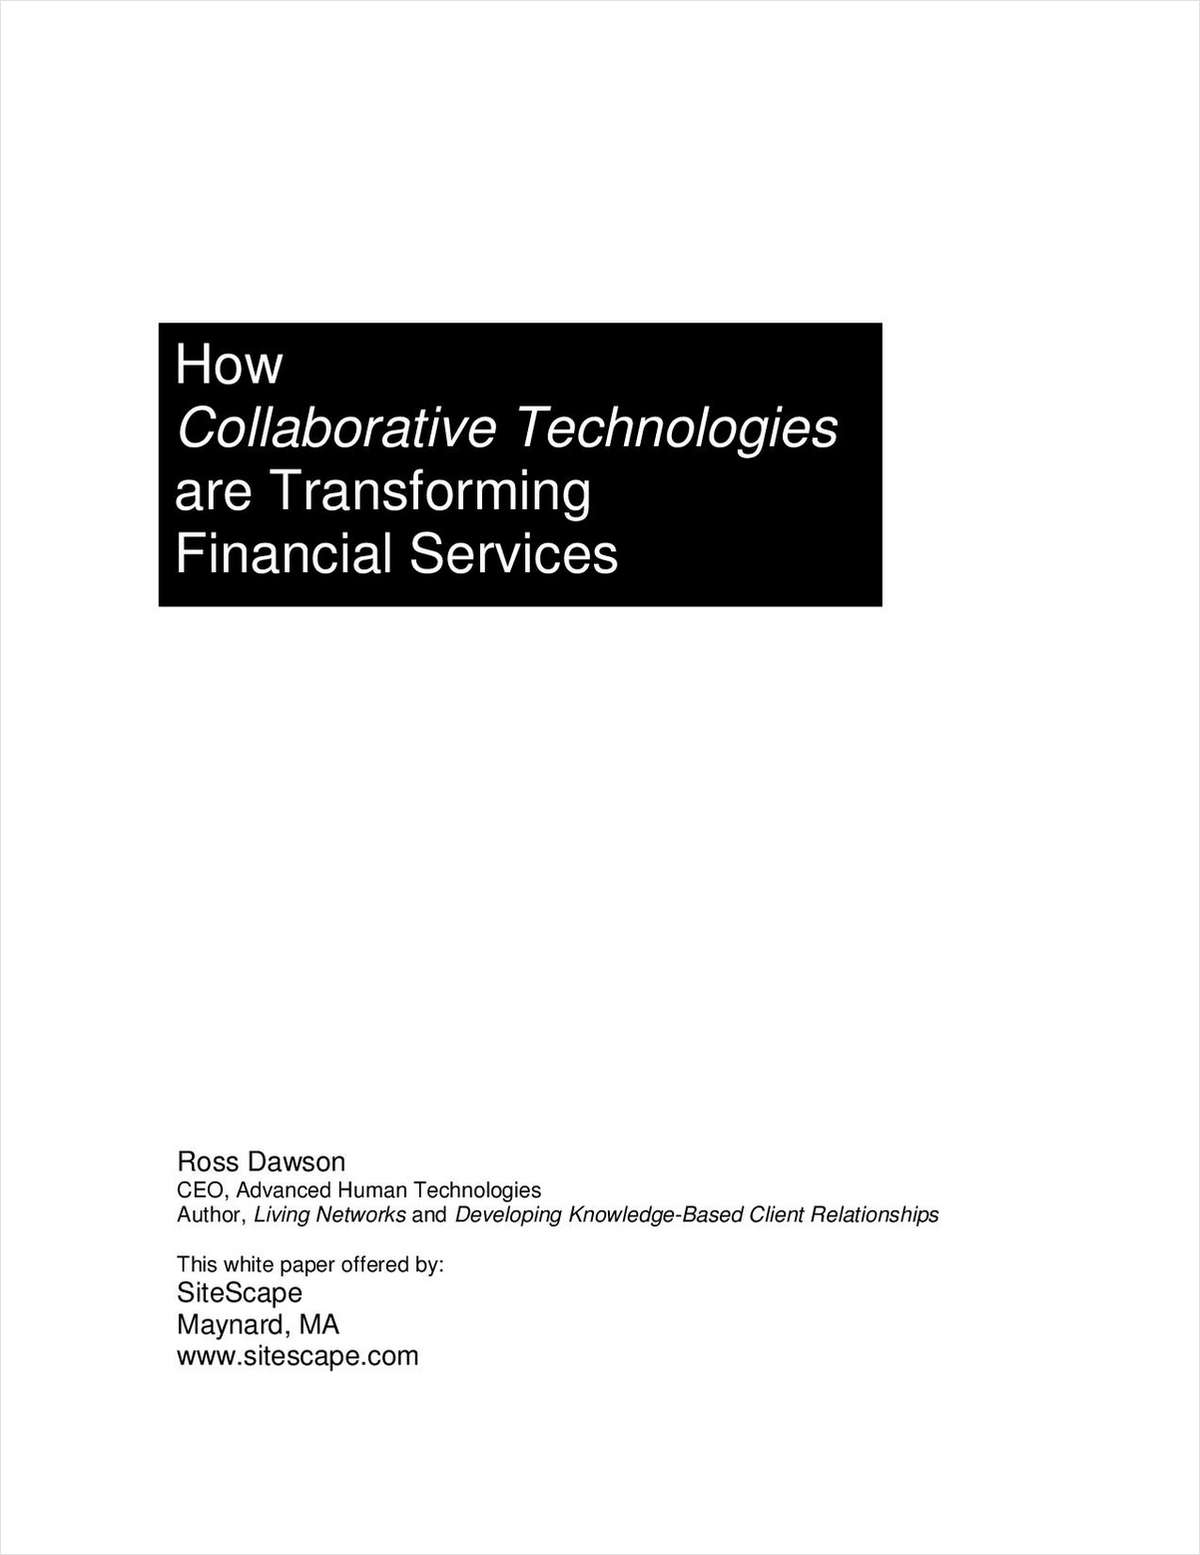 SiteScape - How Collaborative Technologies are Transforming Financial Services